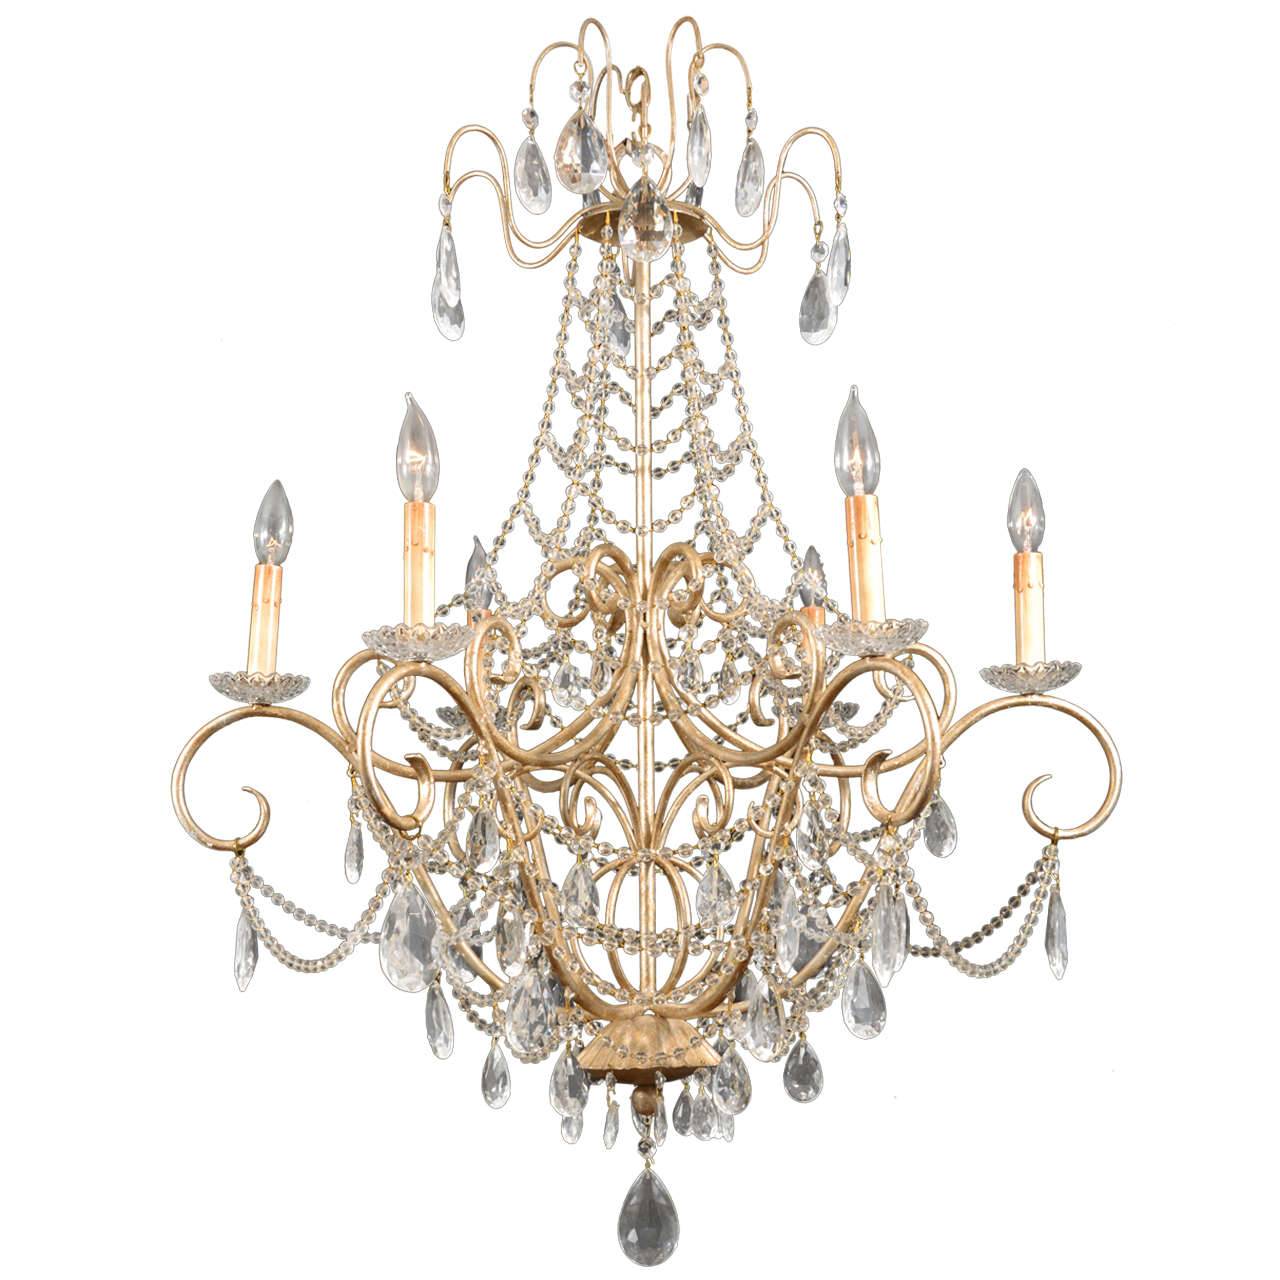 Beaded delicate country french chandelier at 1stdibs French country chandelier